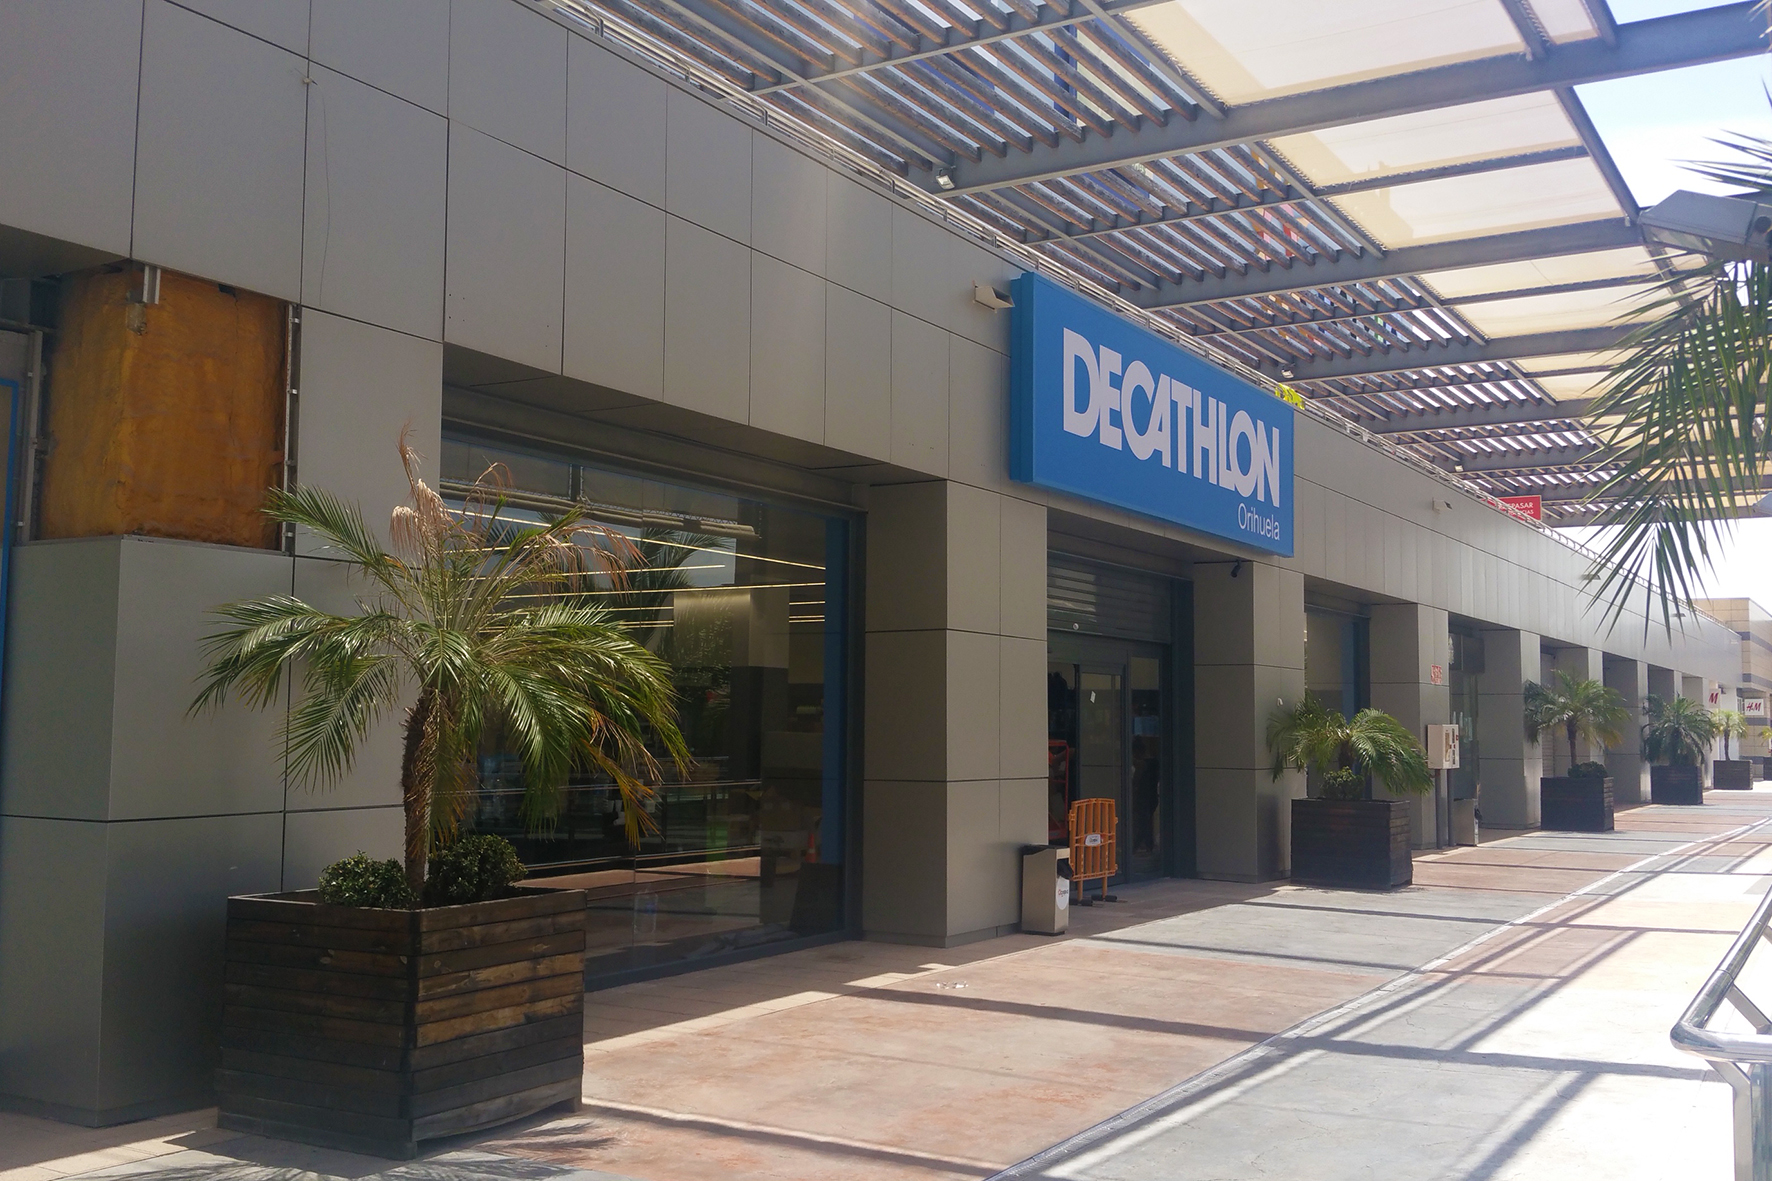 Decathlon Orihuela